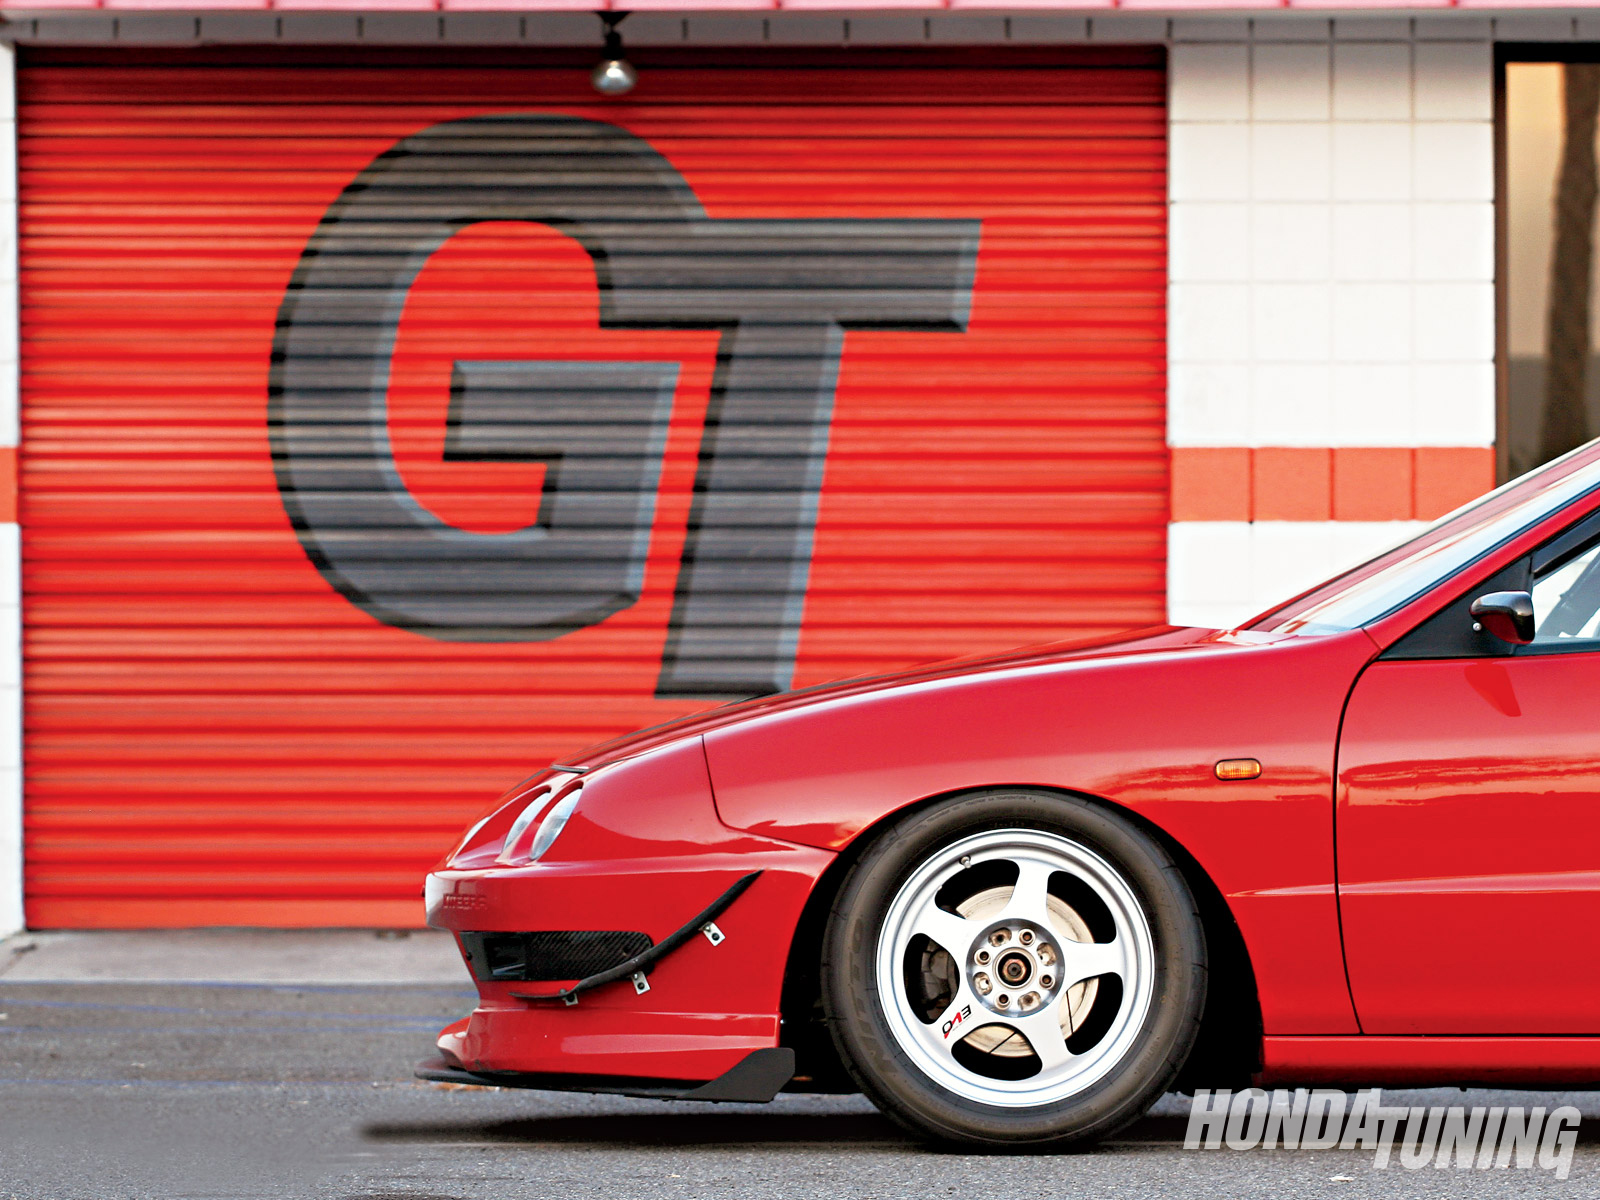 Red temptation: Honda Integra GS-R - Red temptation: Honda Integra GS-R